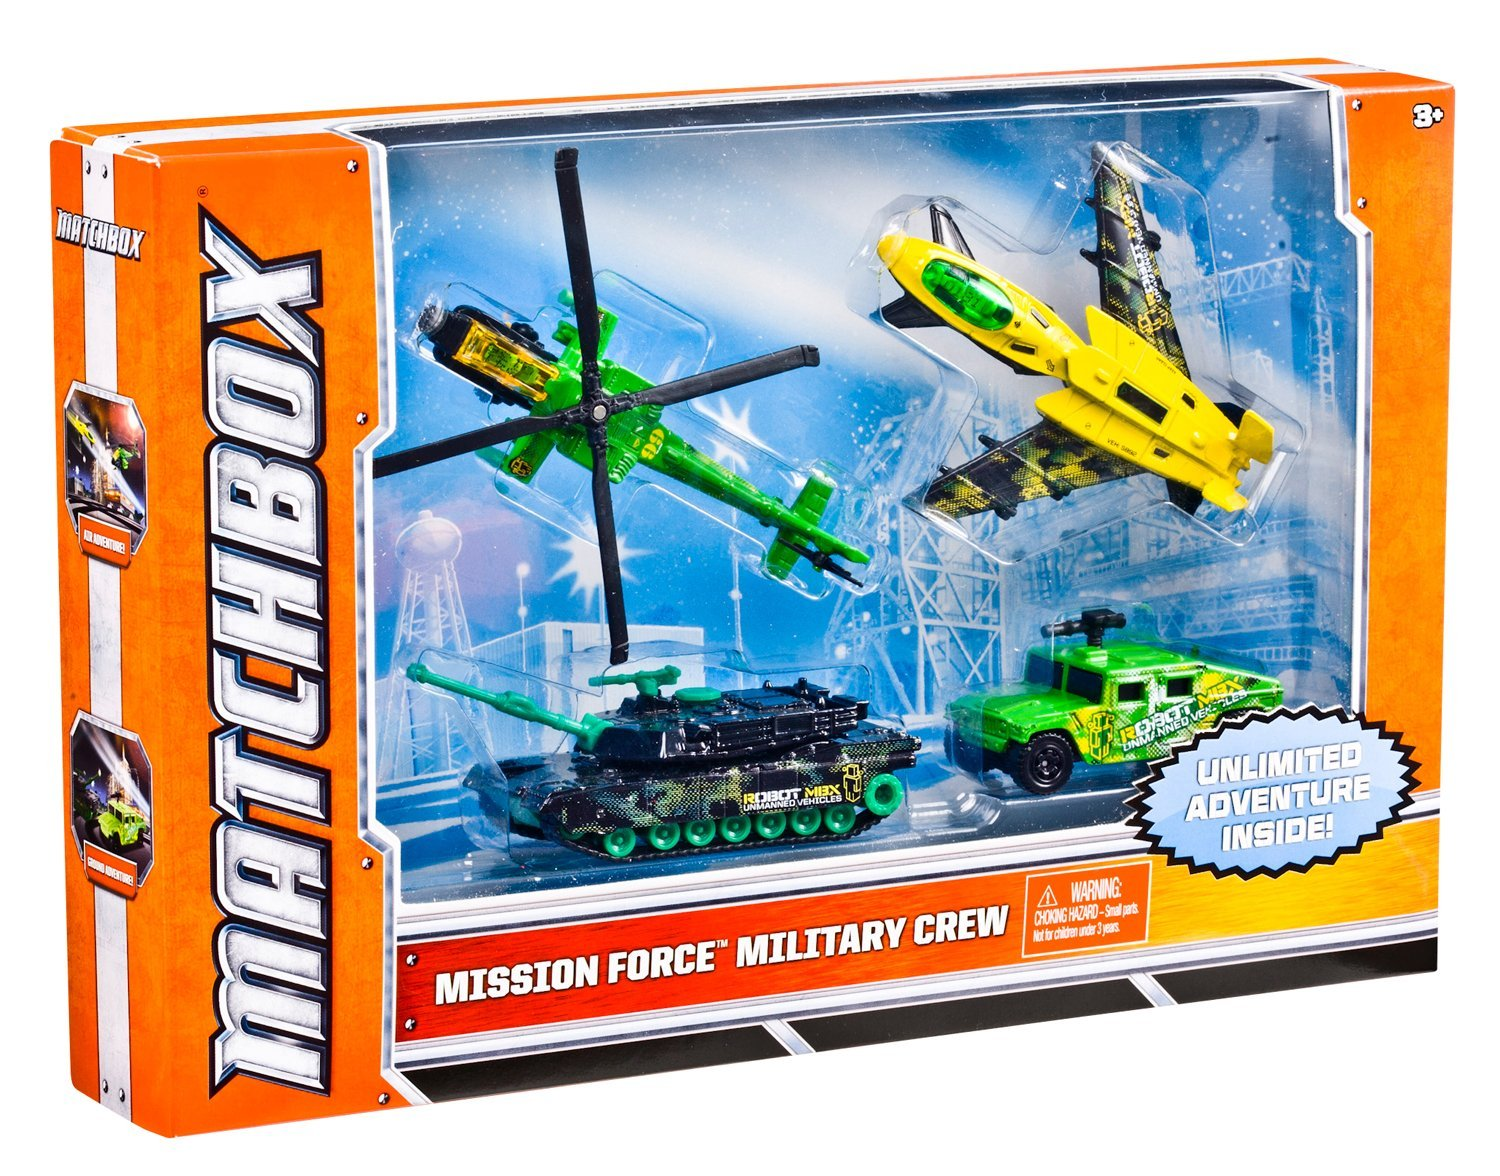 Matchbox Sky Busters Mission Force Military Pack by